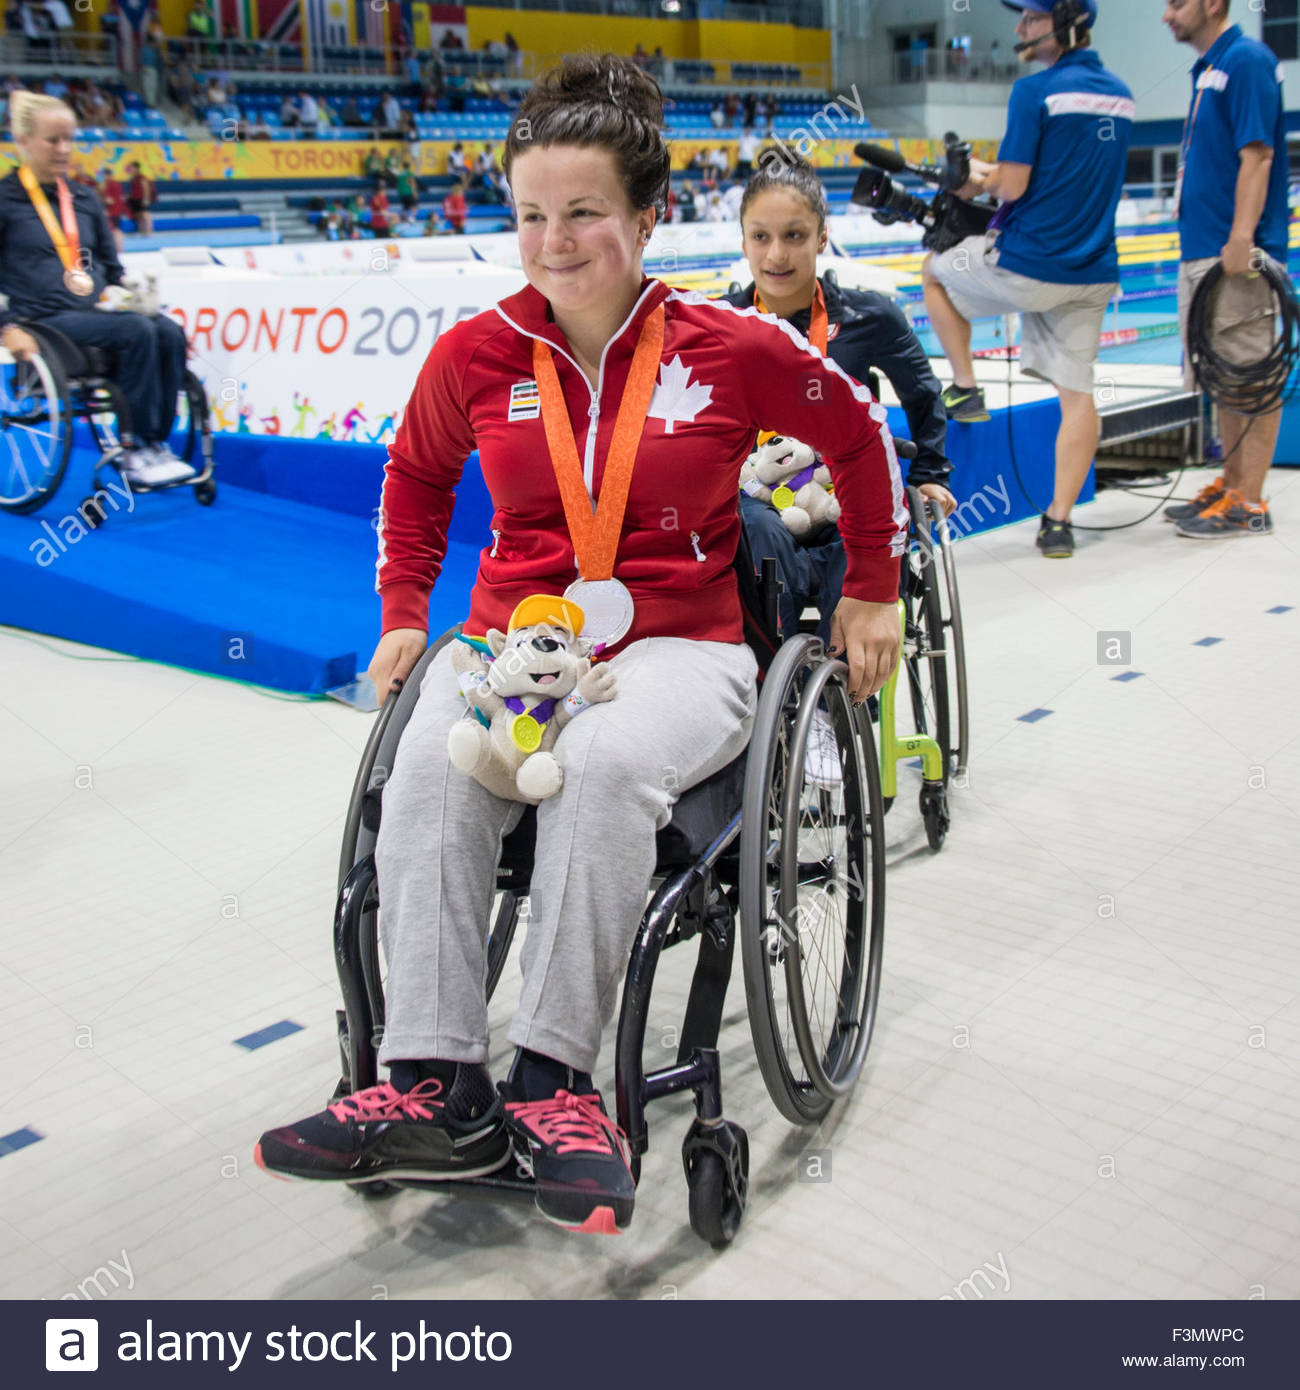 Canadian female athlete winner of the Silver Medal during the Toronto Parapan Am Games. Paralympic Games. - Stock Image